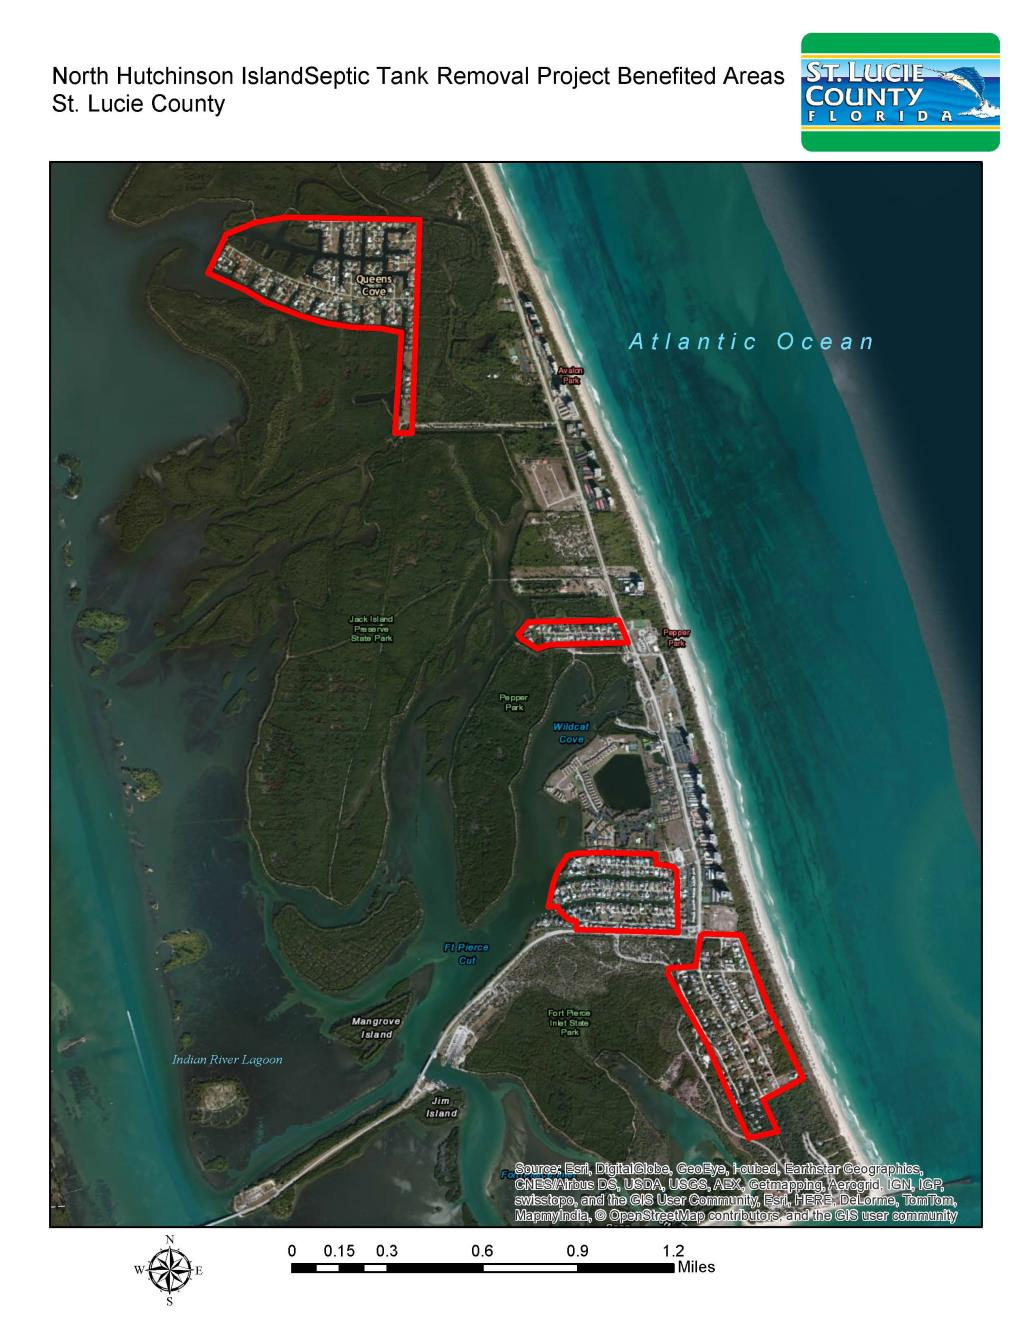 Hutchinson Island Florida Map.North Hutchinson Island Septic Removal Project St Lucie County Fl